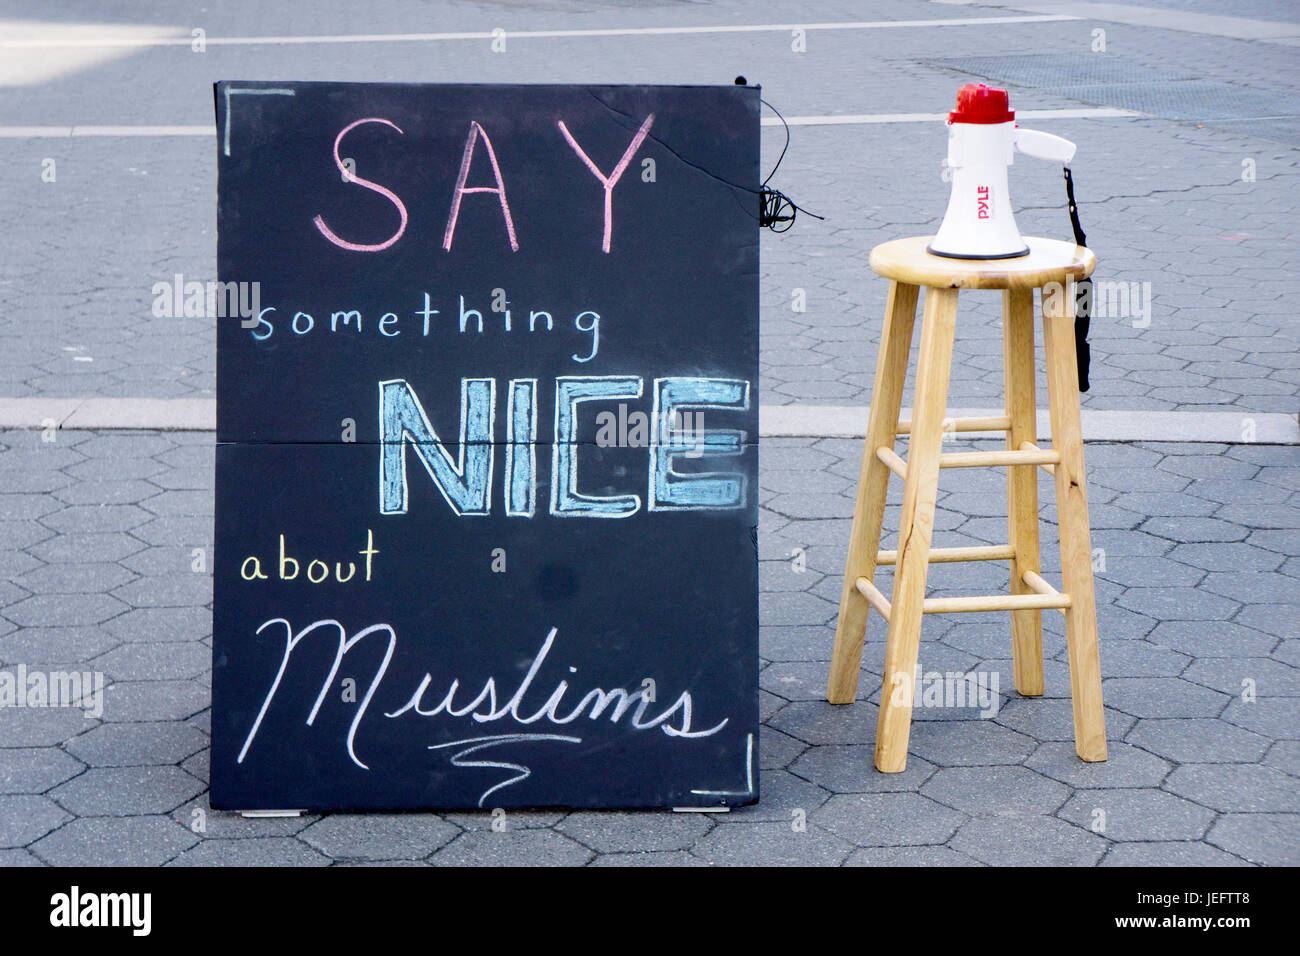 A sign and megaphone from a campaign to promote understanding of Muslims. In Union Square Park, Manhattan, New York - Stock Image